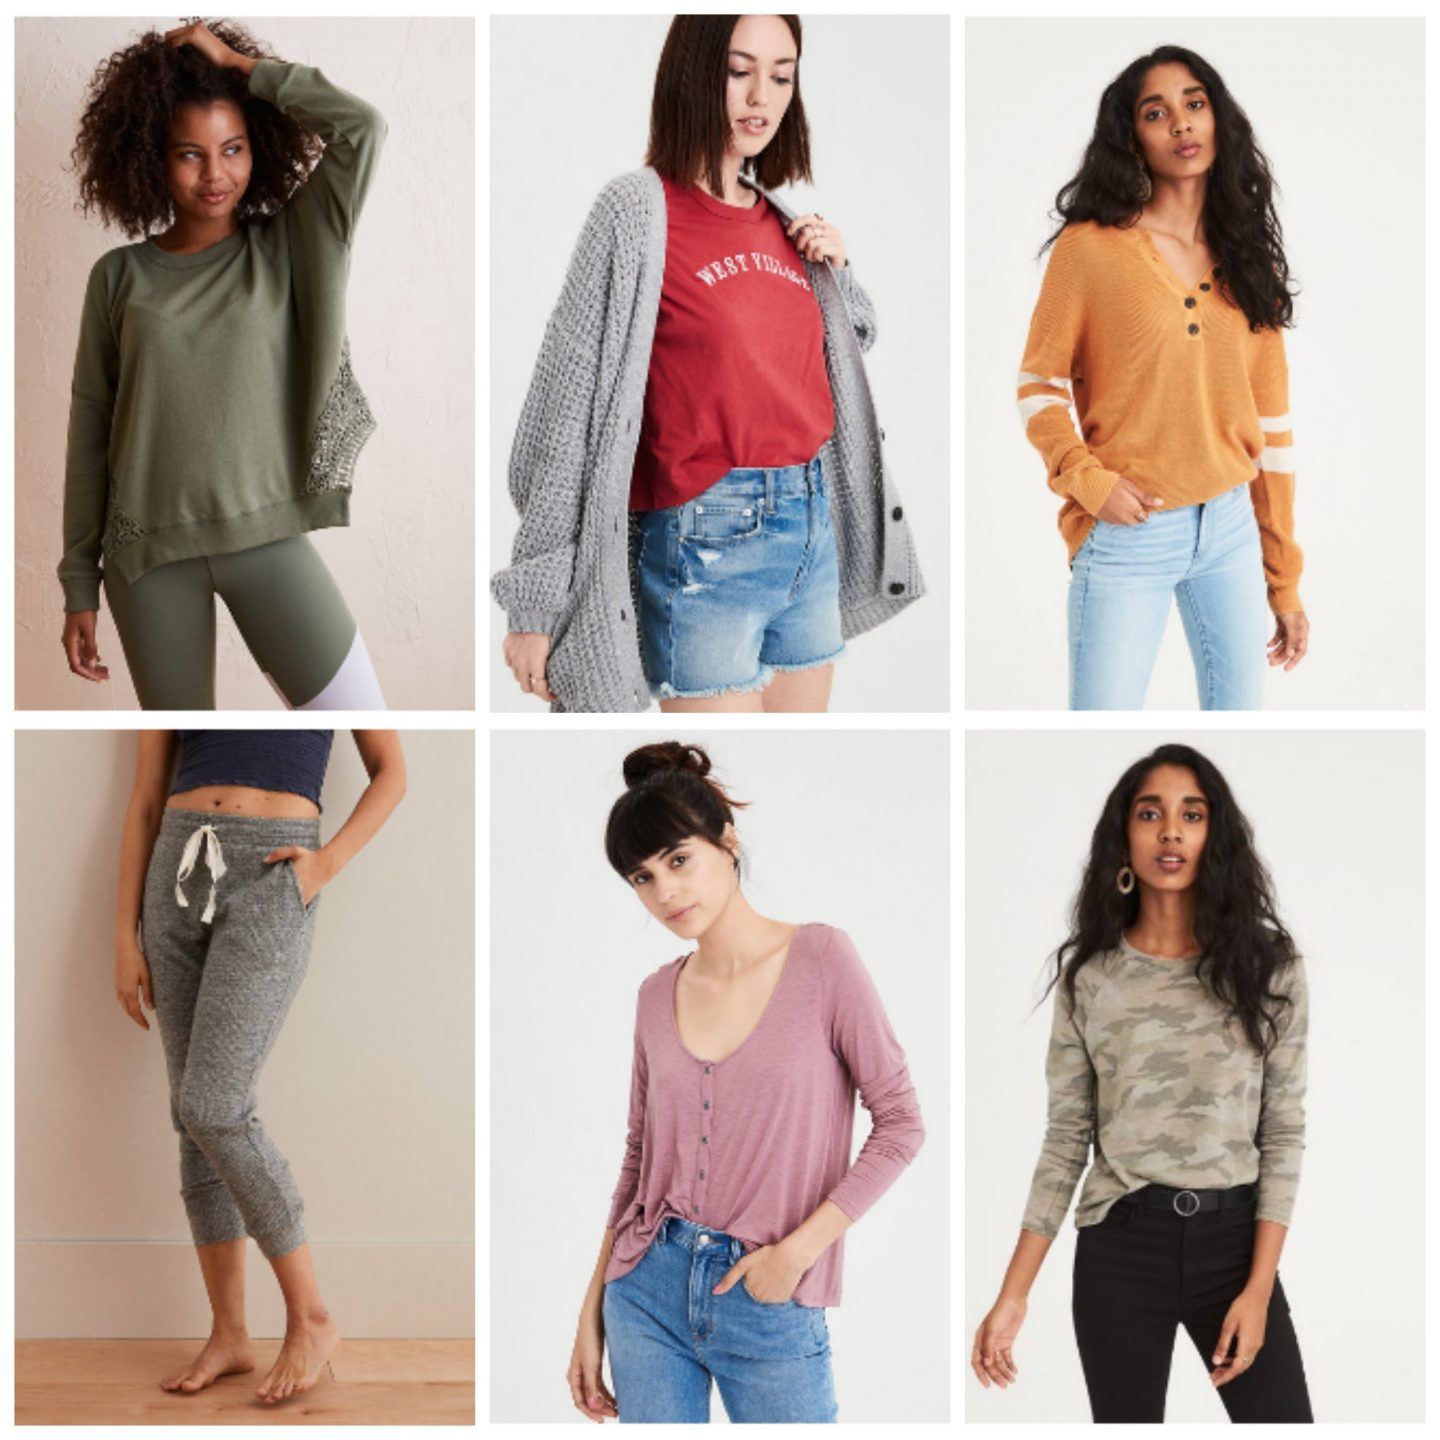 Tuesday's Cravings: American Eagle and Aerie